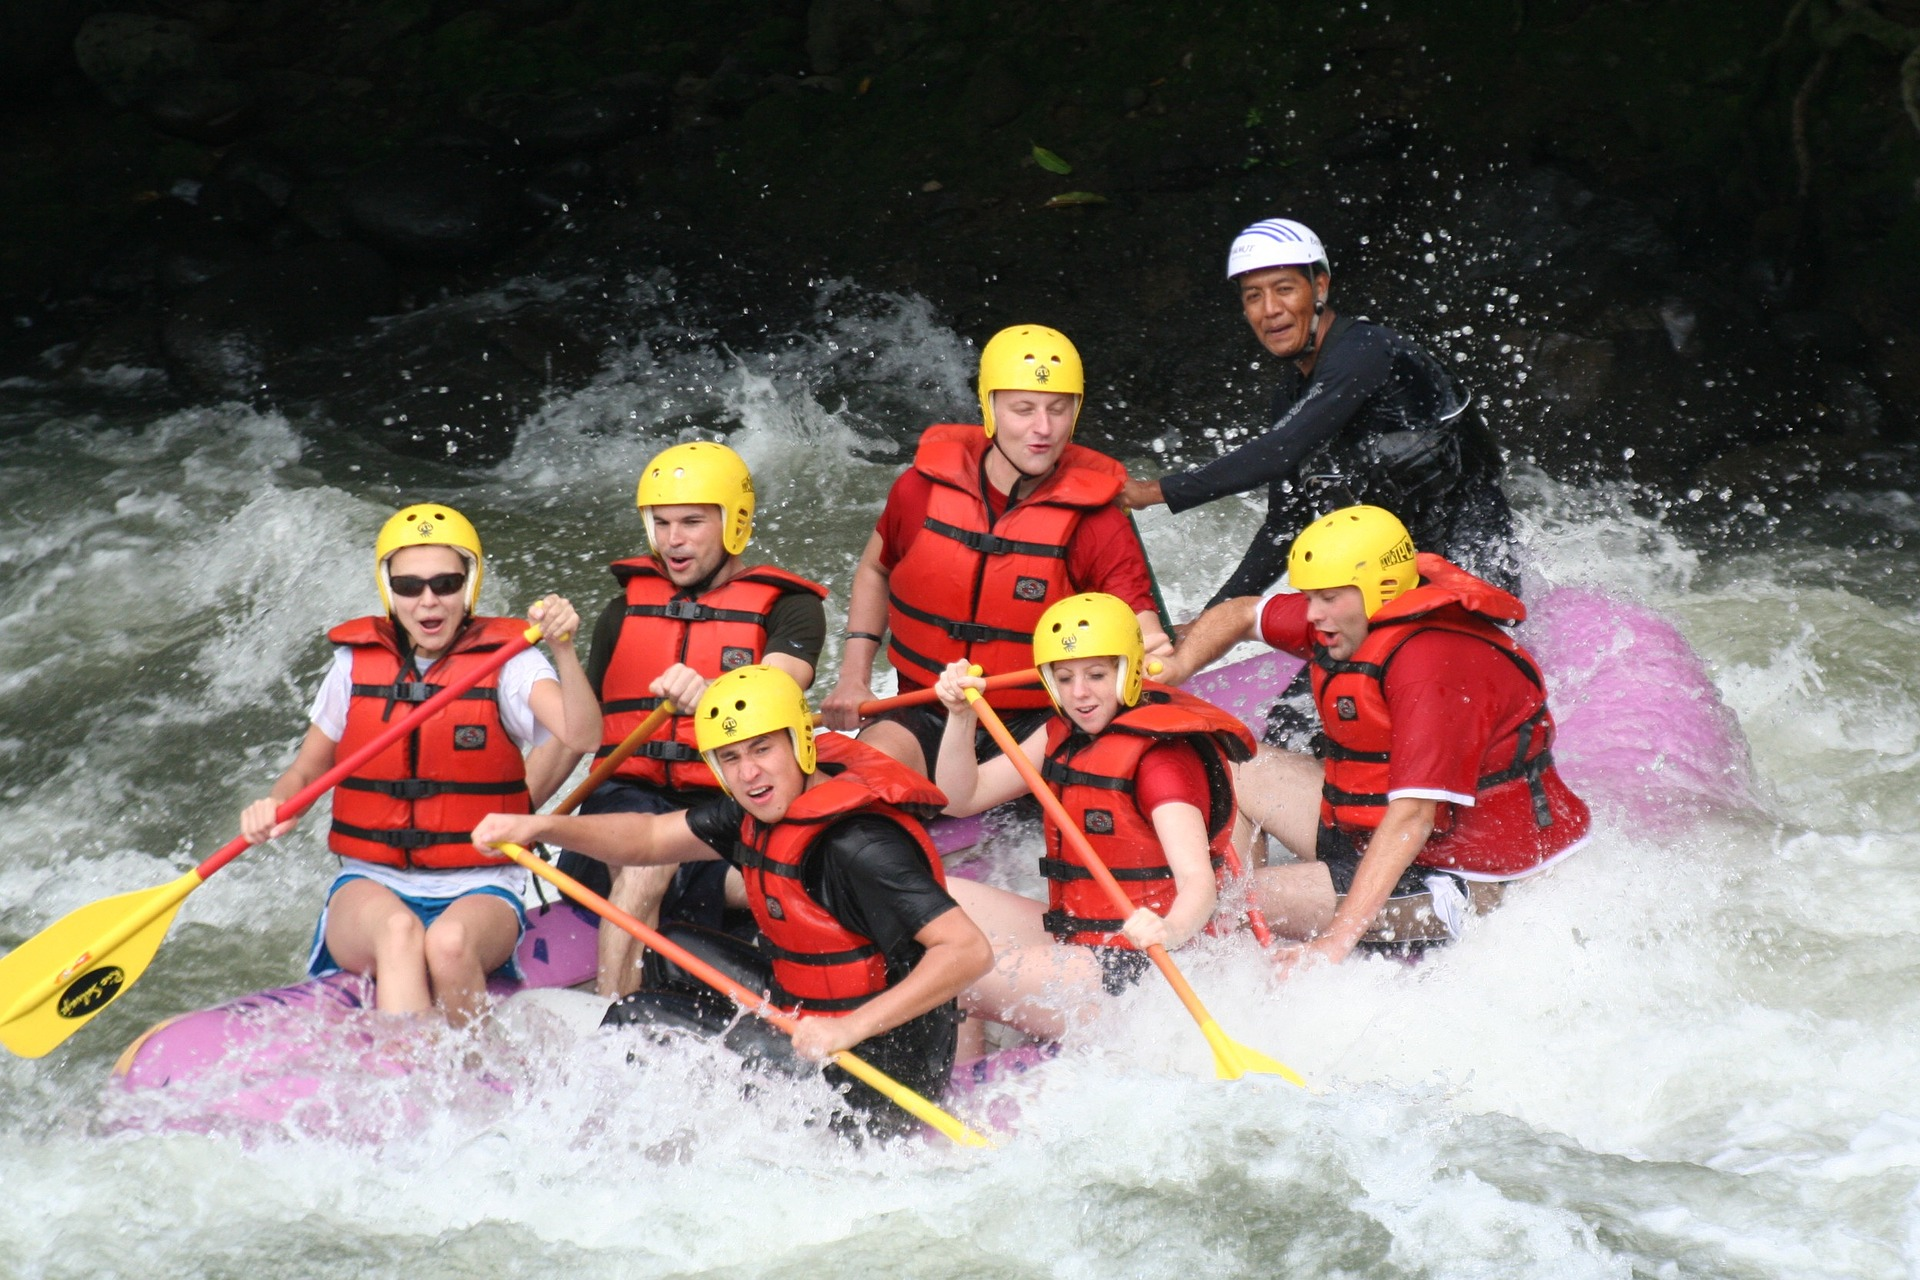 exciting like river rafting